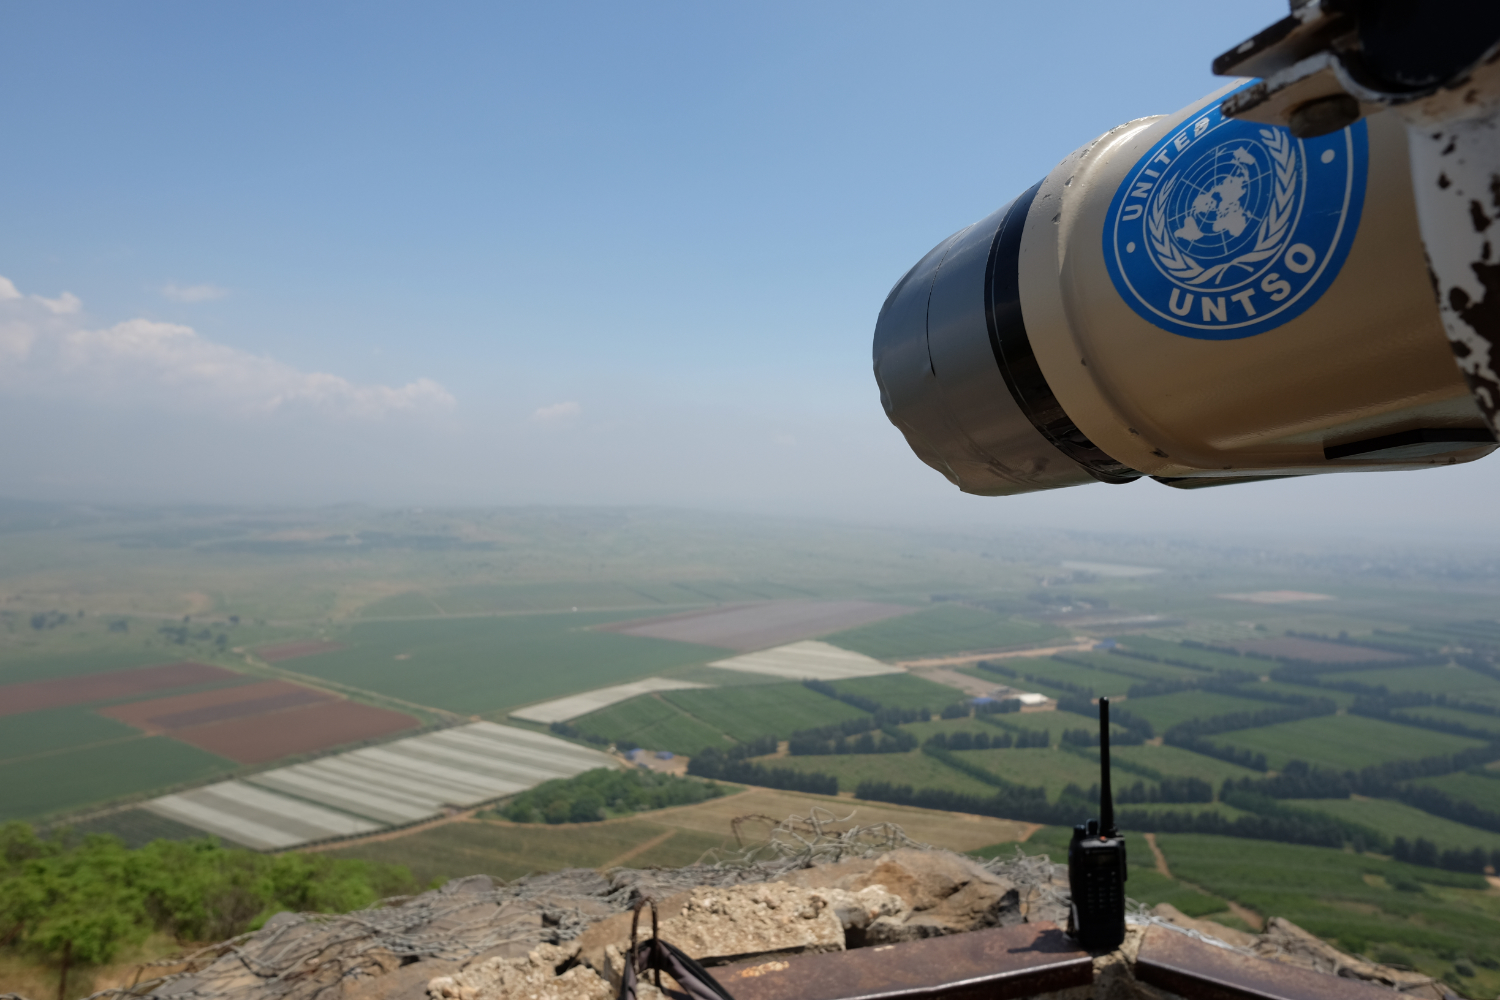 High powered binoculars are pointed towards the DMZ between Israel in Syria from Mt. Bental in Israels Golan Heights.  Photo By: Sarah Tesla